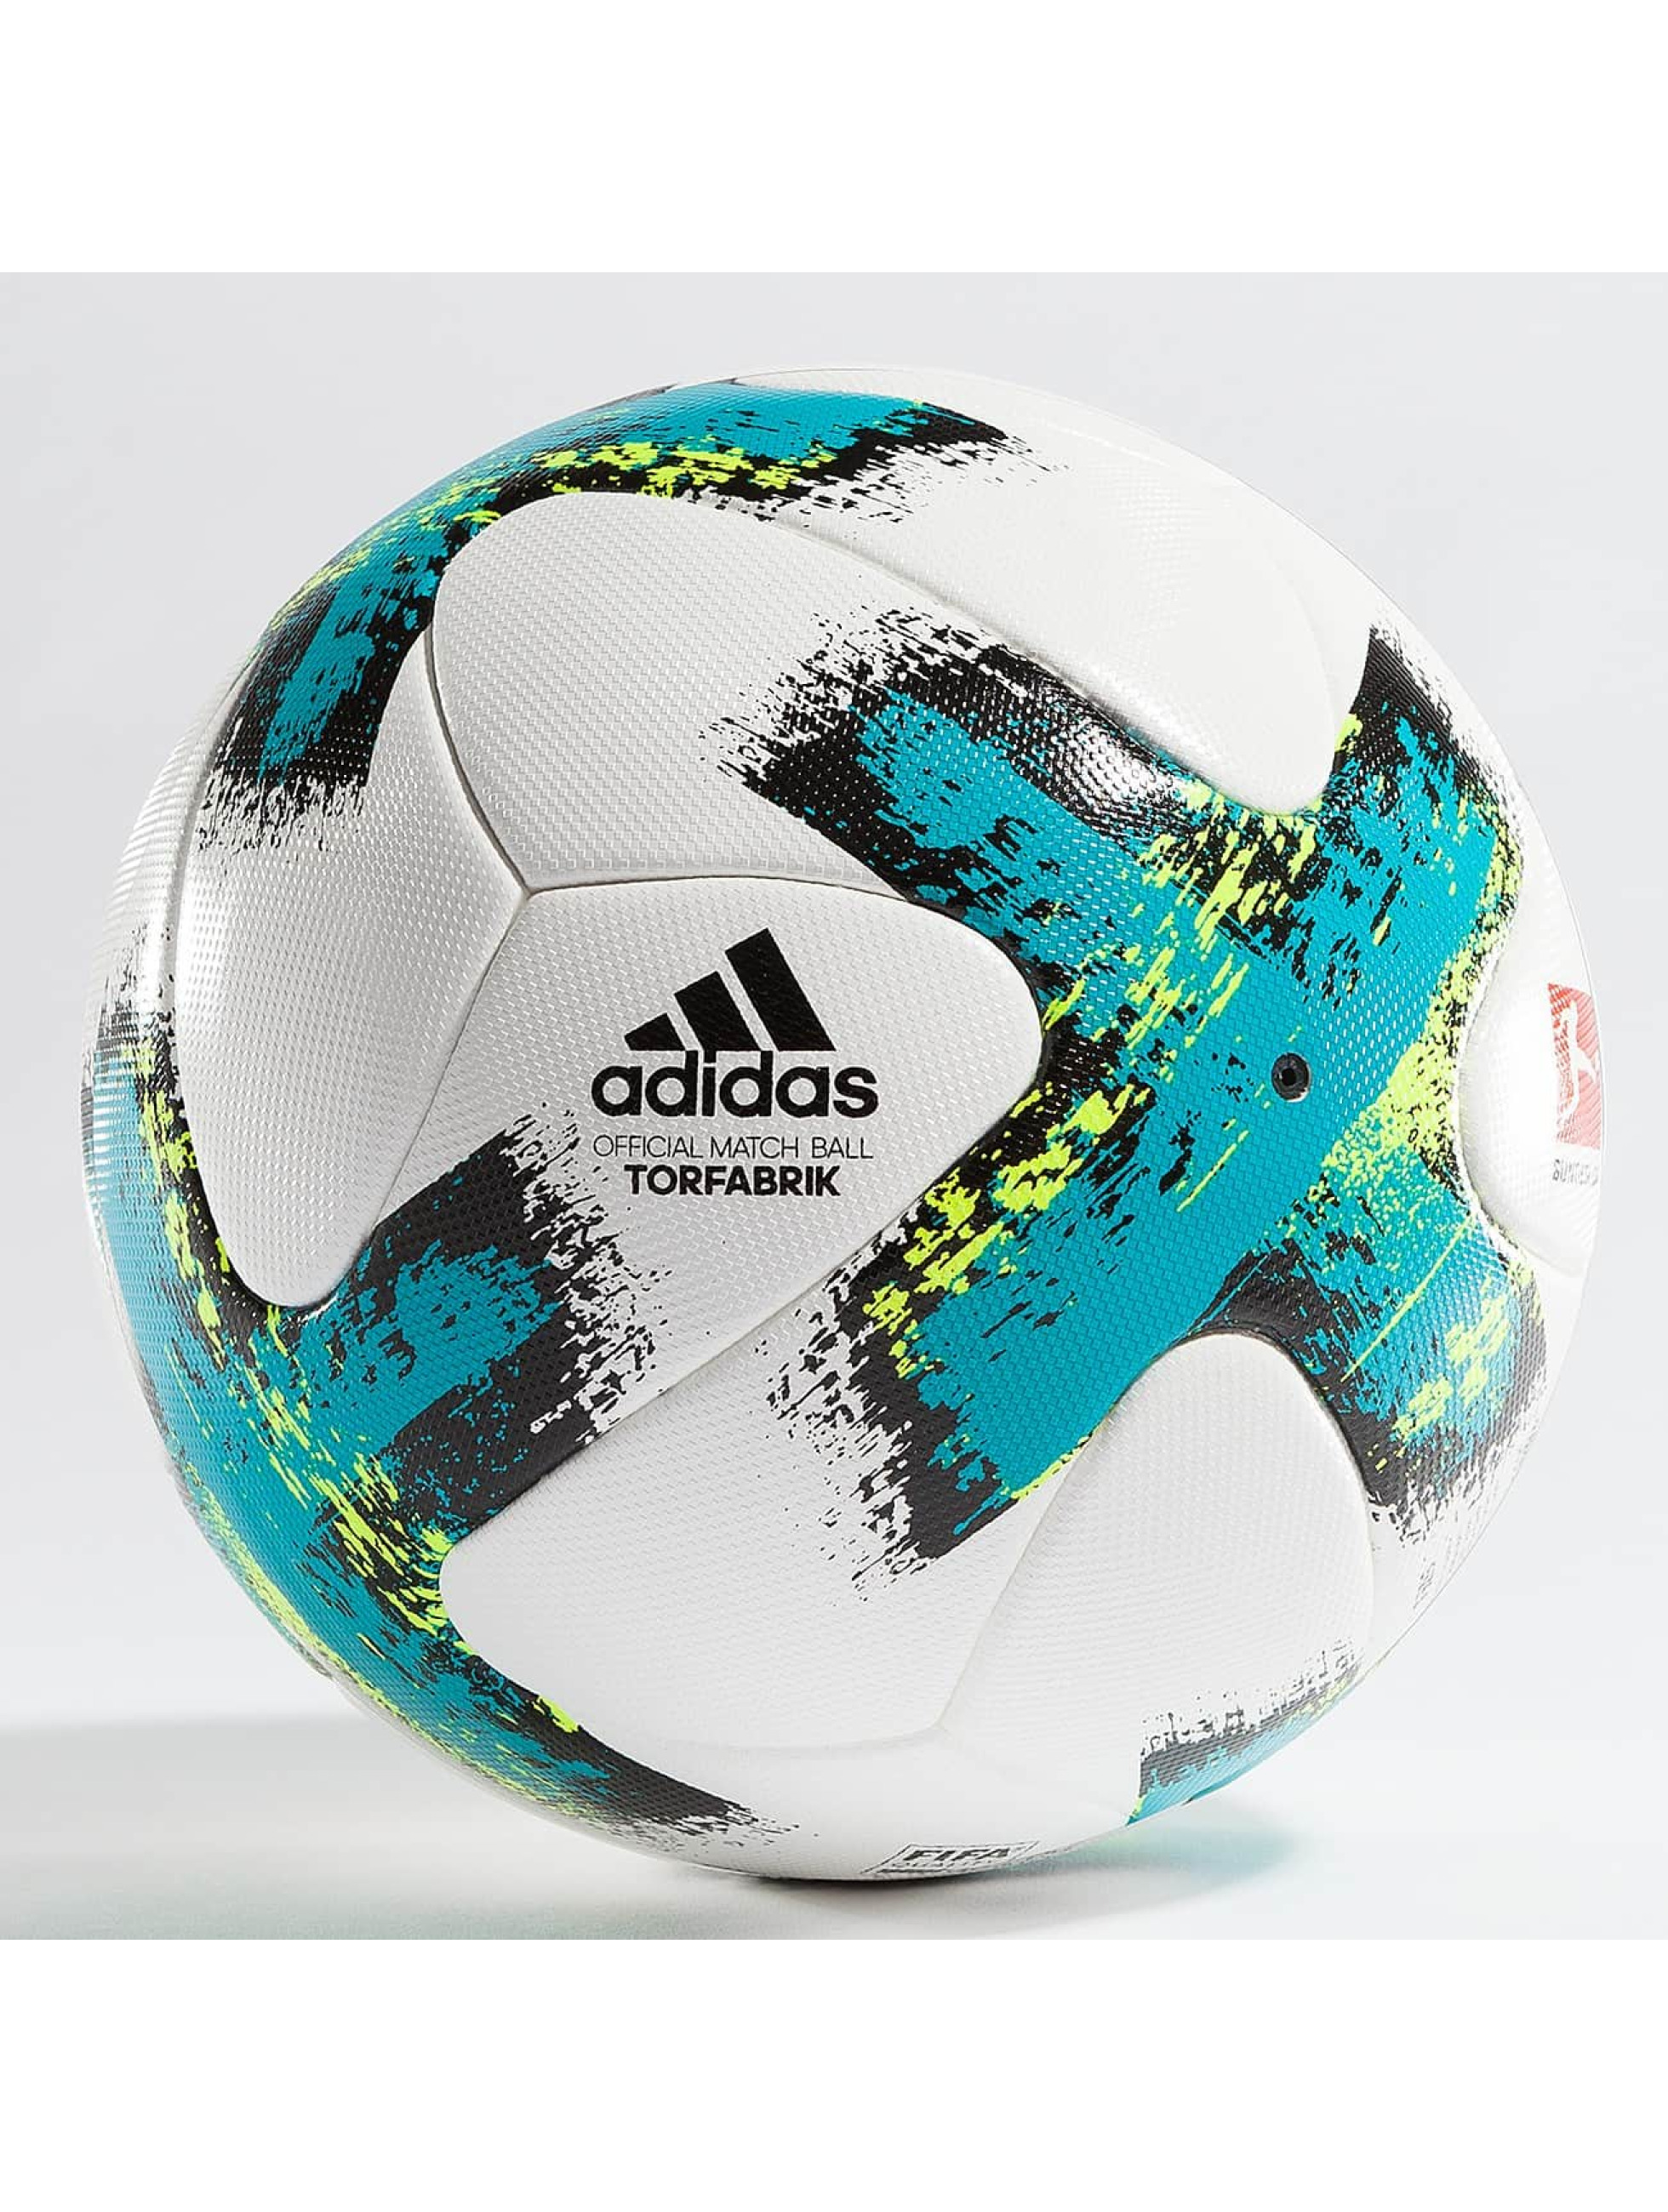 adidas Performance Pallot Torfabrik Offical Match Ball valkoinen